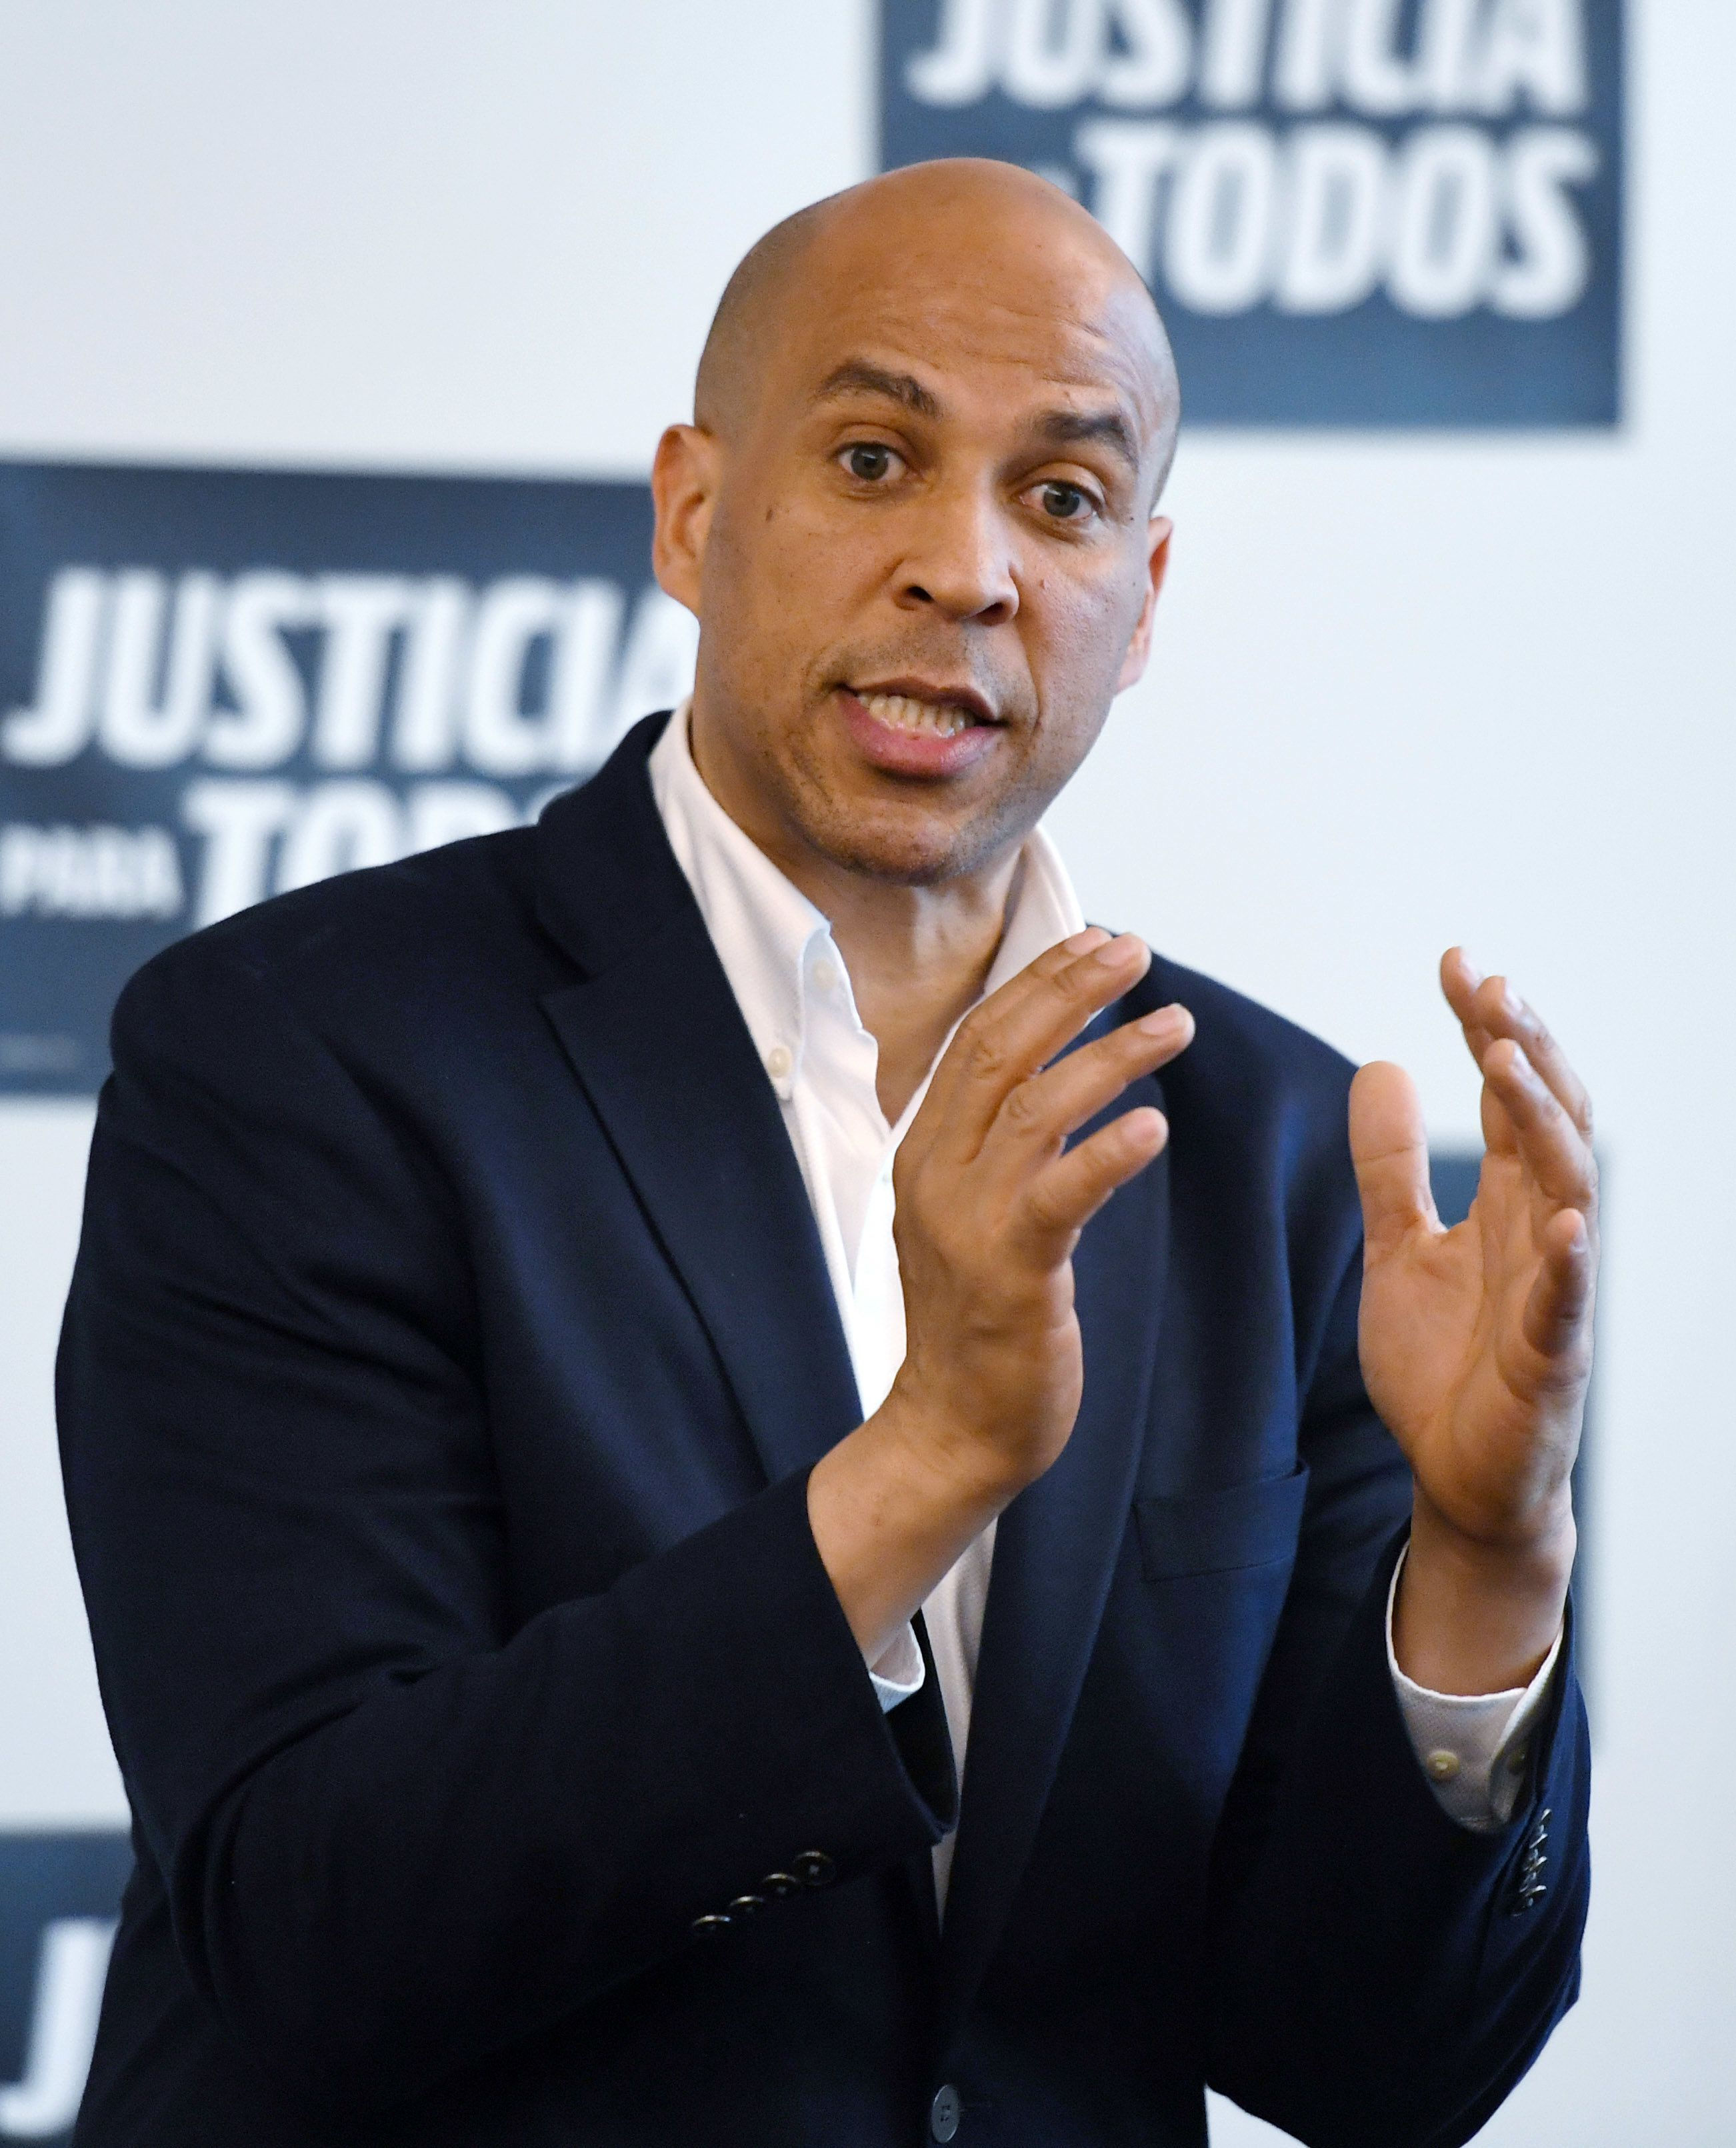 LAS VEGAS, NEVADA - APRIL 18:  U.S. Sen. Cory Booker (D-NJ) speaks during a meet-and-greet with Young Democrats of UNLV as part of his 'Justice For All' tour at UNLV on April 18, 2019 in Las Vegas, Nevada. Booker is campaigning for the 2020 Democratic nomination for president.  (Photo by Ethan Miller/Getty Images)